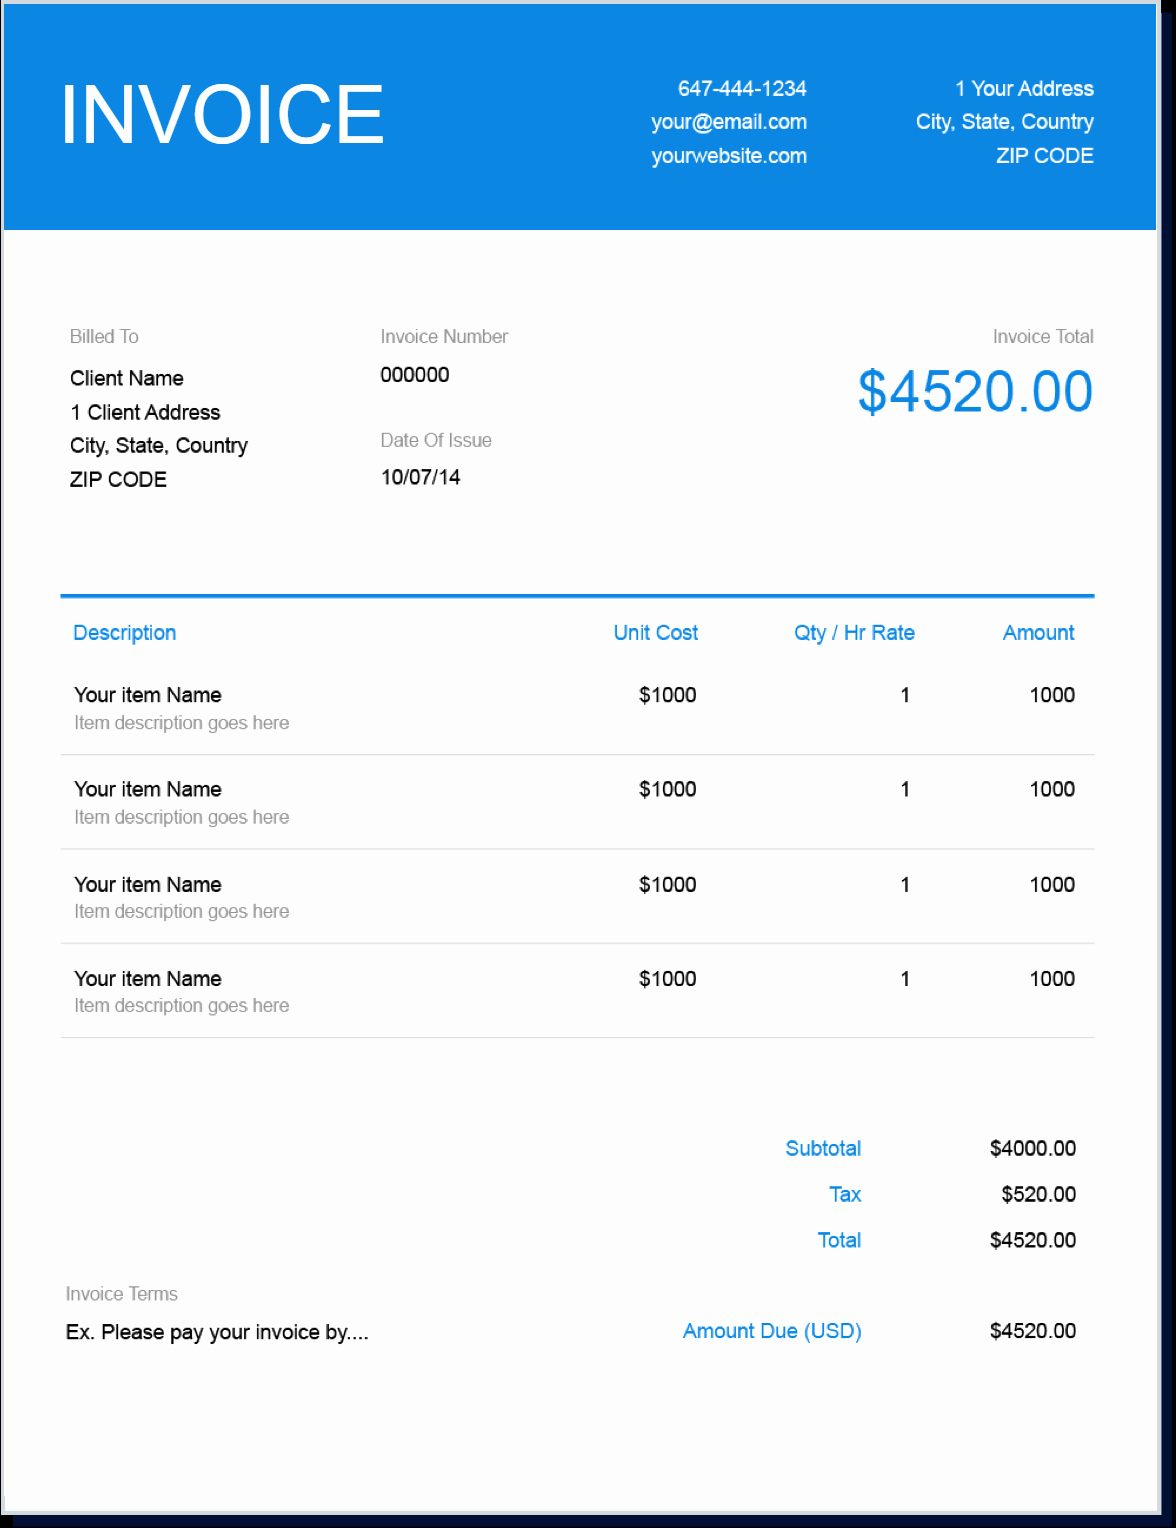 Billing Invoice Template Word Inspirational Invoice Template